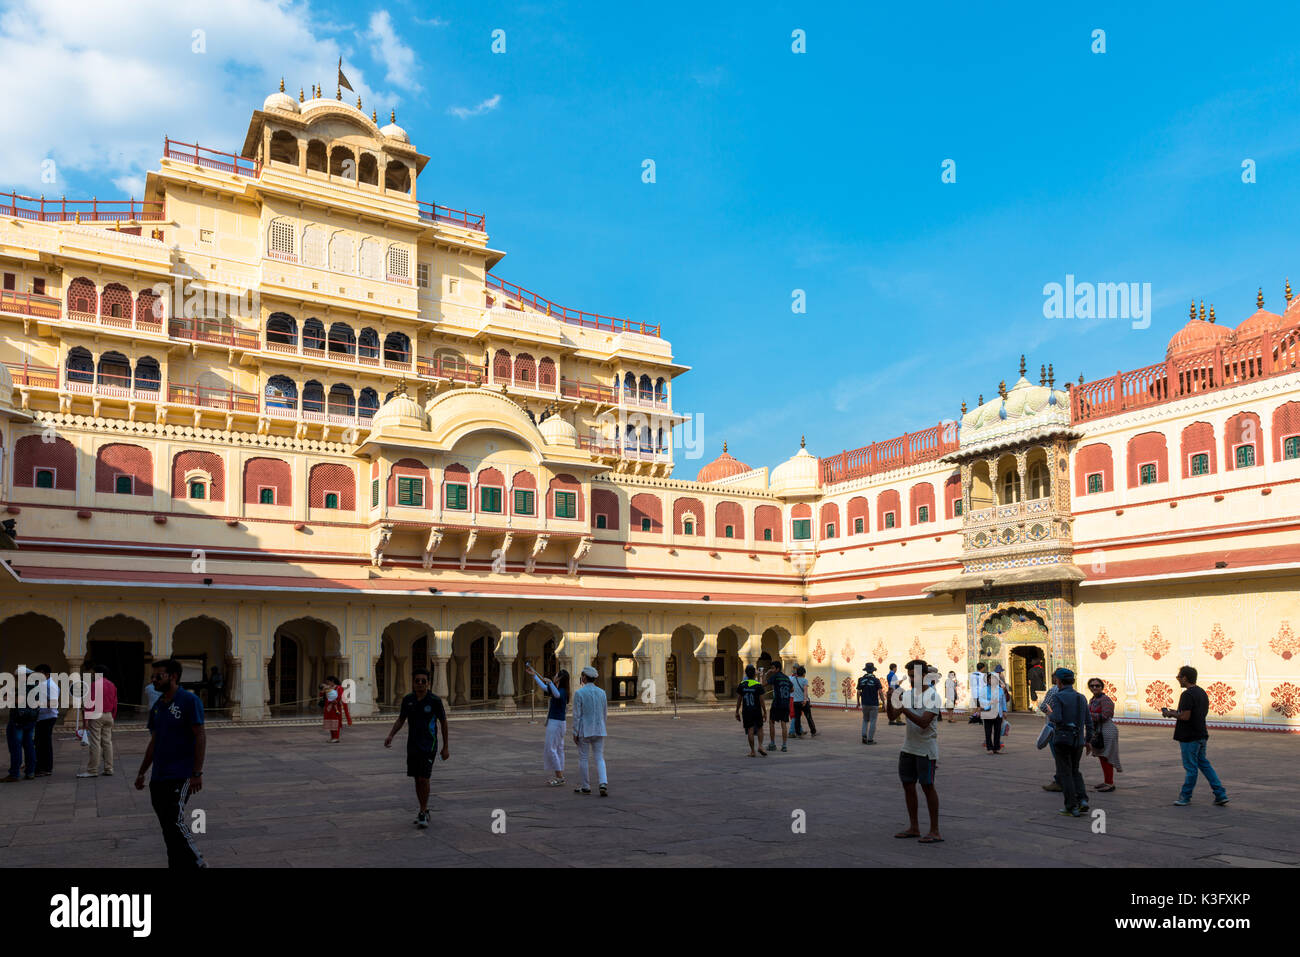 JAIPUR, RAJASTHAN, INDIA - MARCH 10, 2016: Horizontal picture of Chandra Mahal inside of City Palace in Jaipur, known as pink city of Rajasthan in Ind - Stock Image